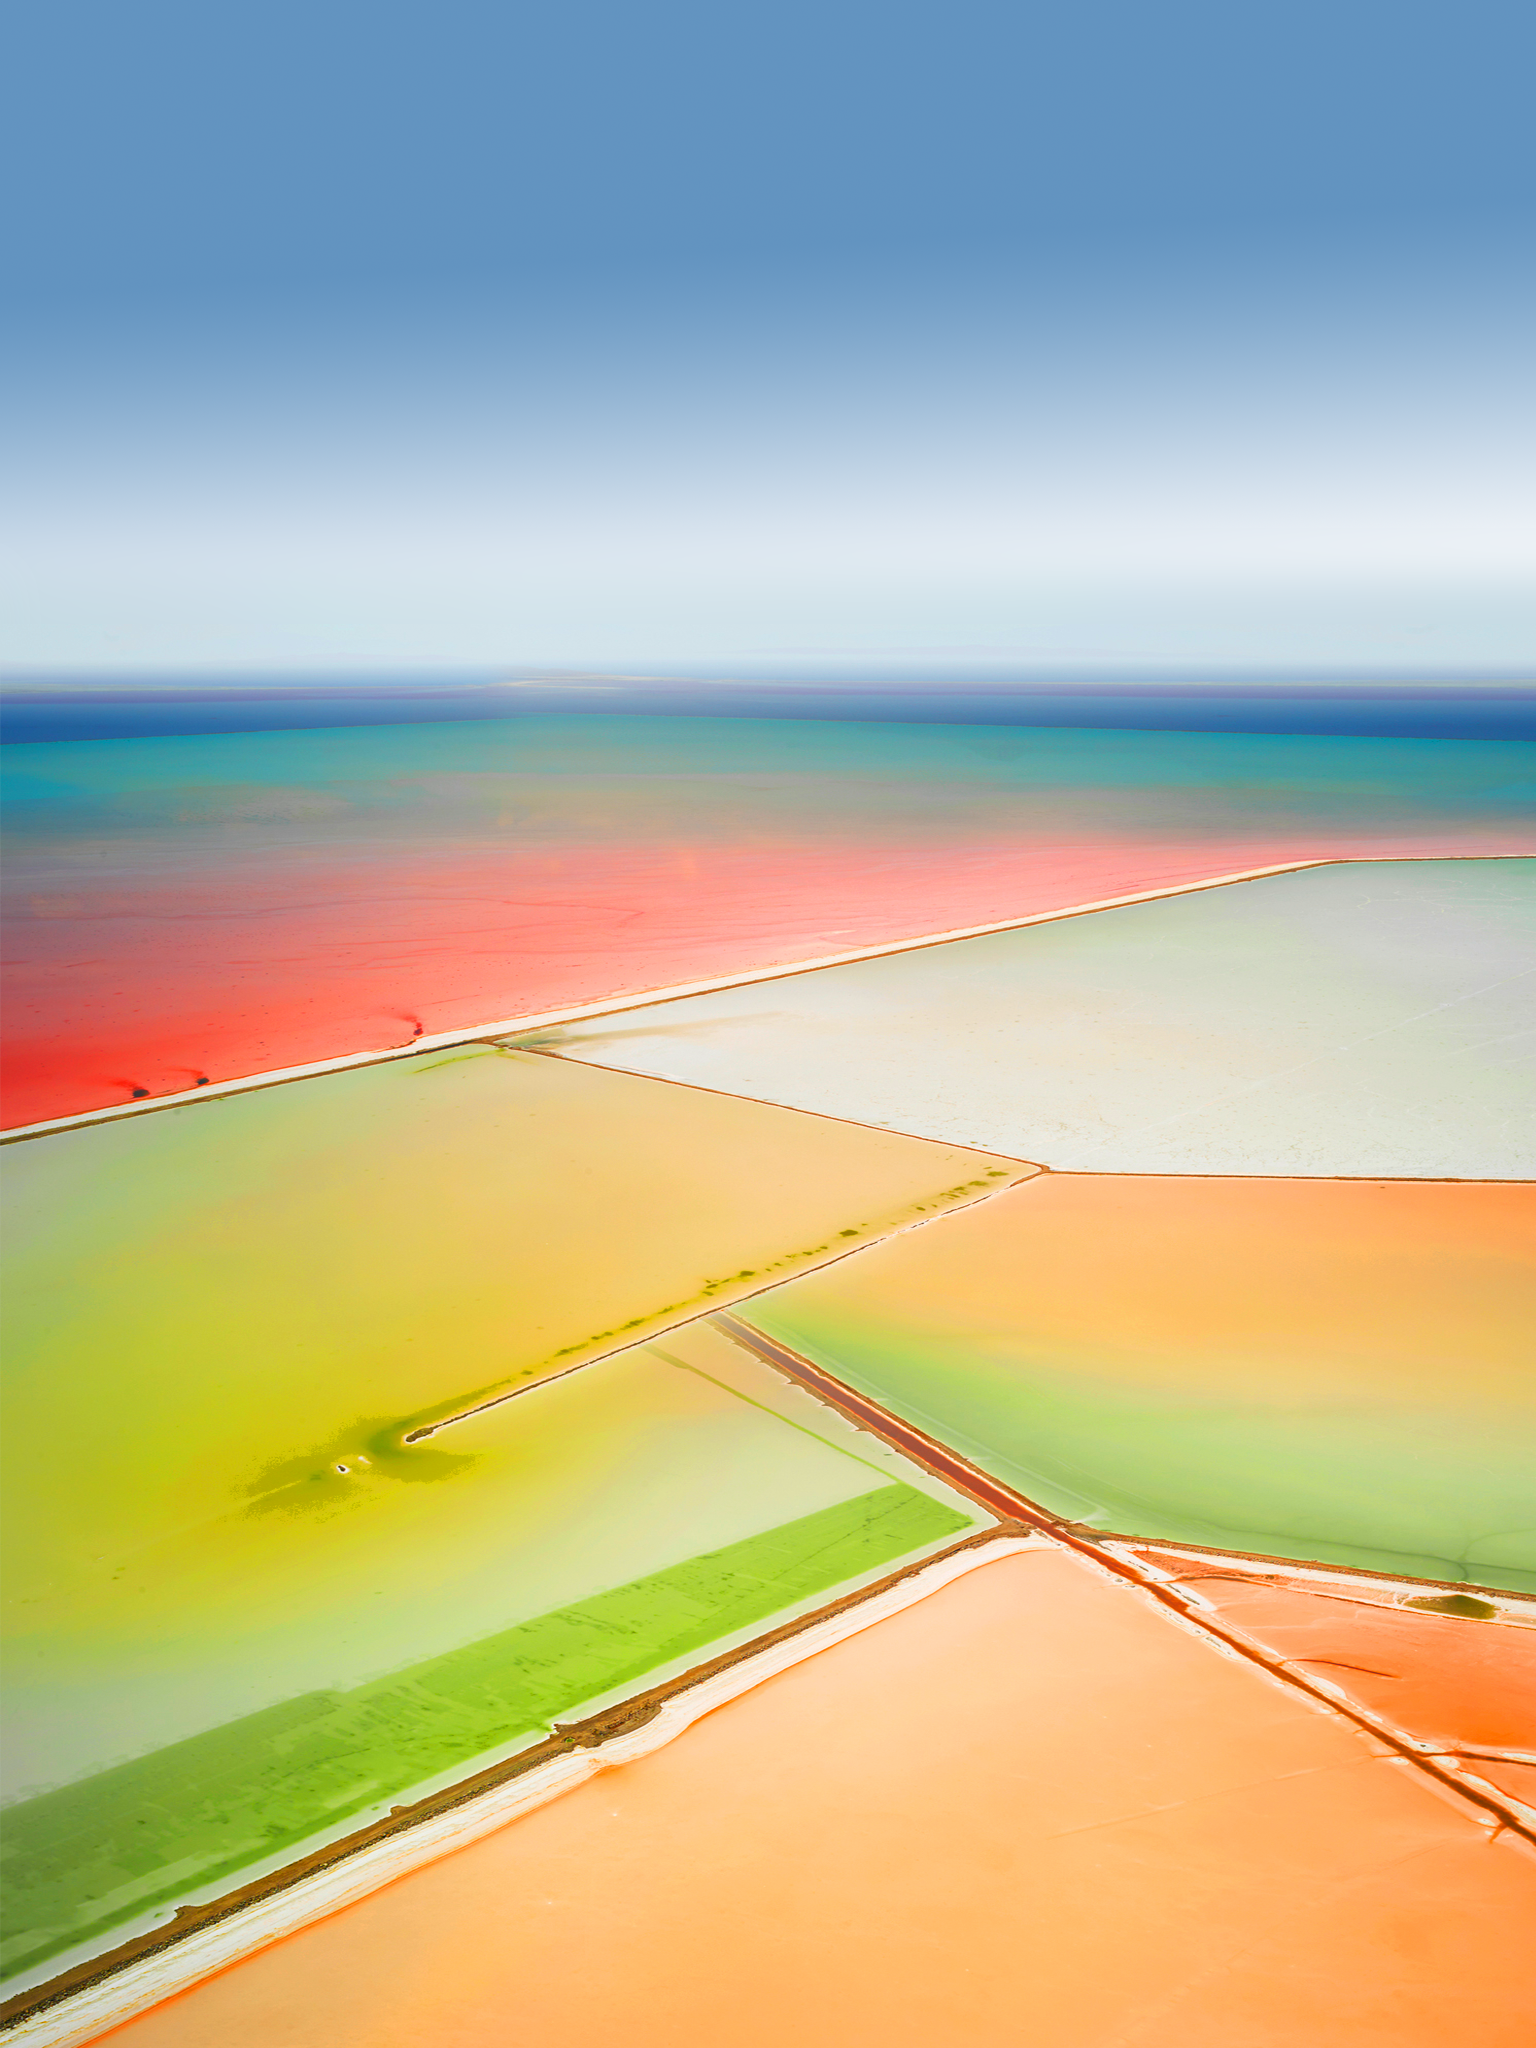 iPad Pro 9.7 download your new wallpapers in 2020 Ipad